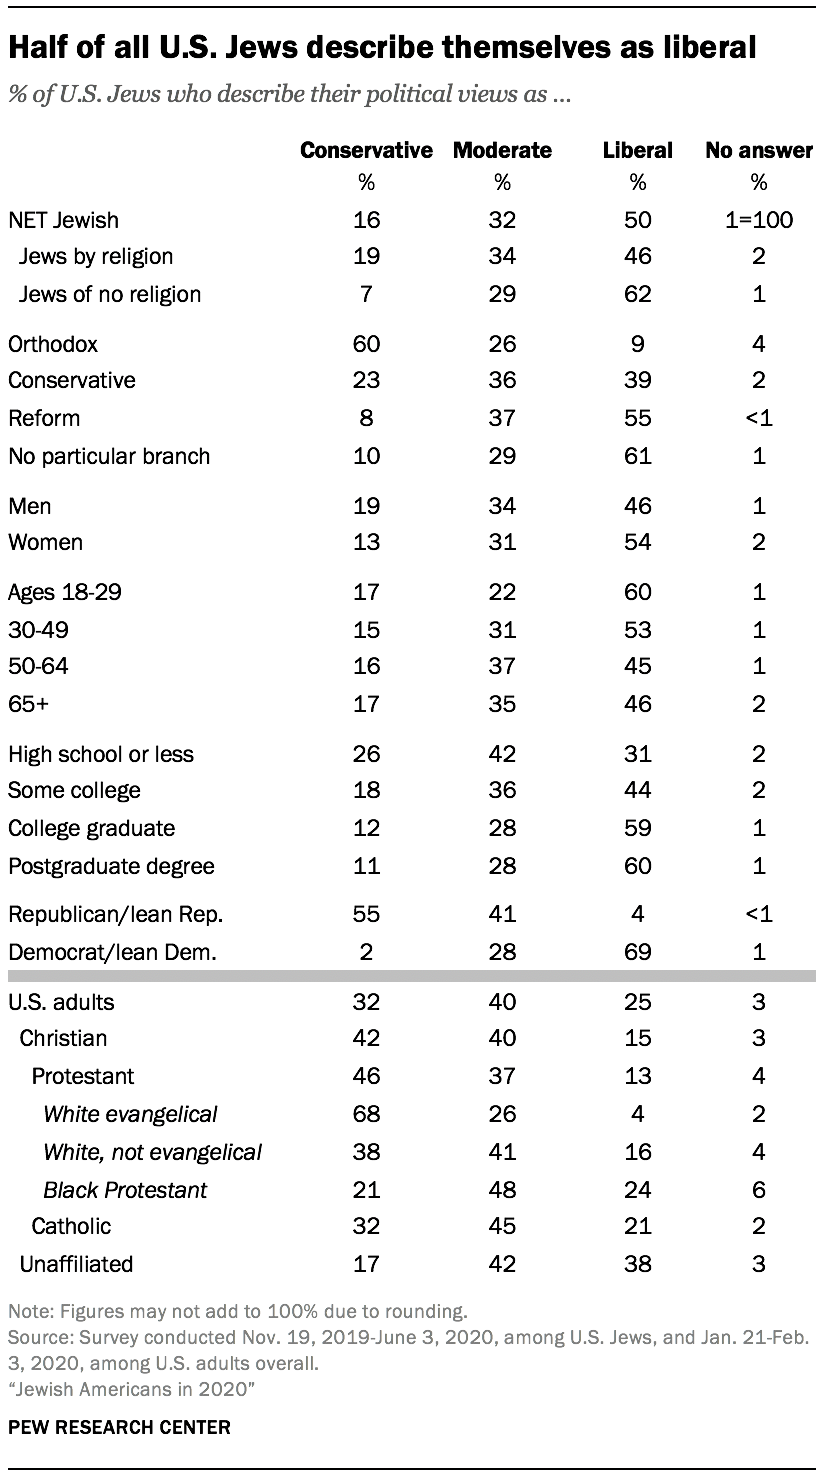 Half of all U.S. Jews describe themselves as liberal